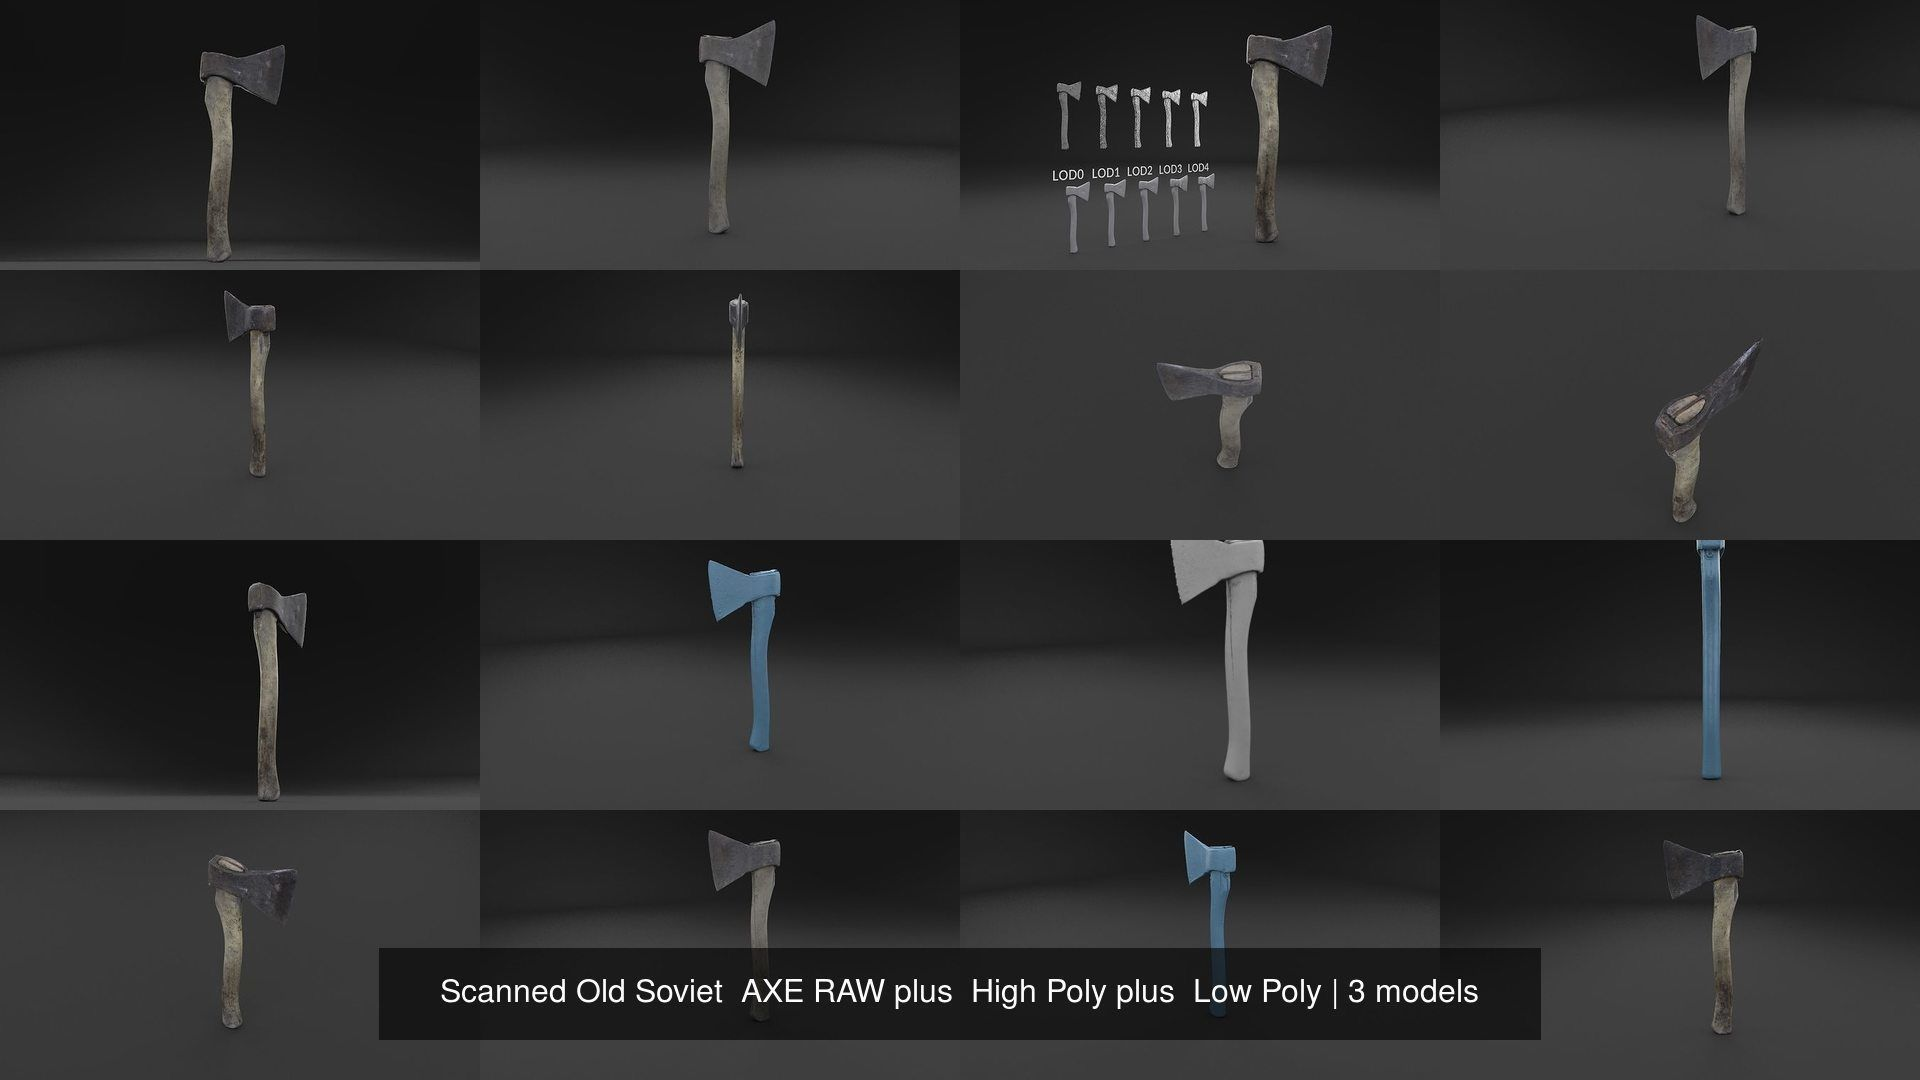 Scanned Old Soviet  AXE RAW plus  High Poly plus  Low Poly